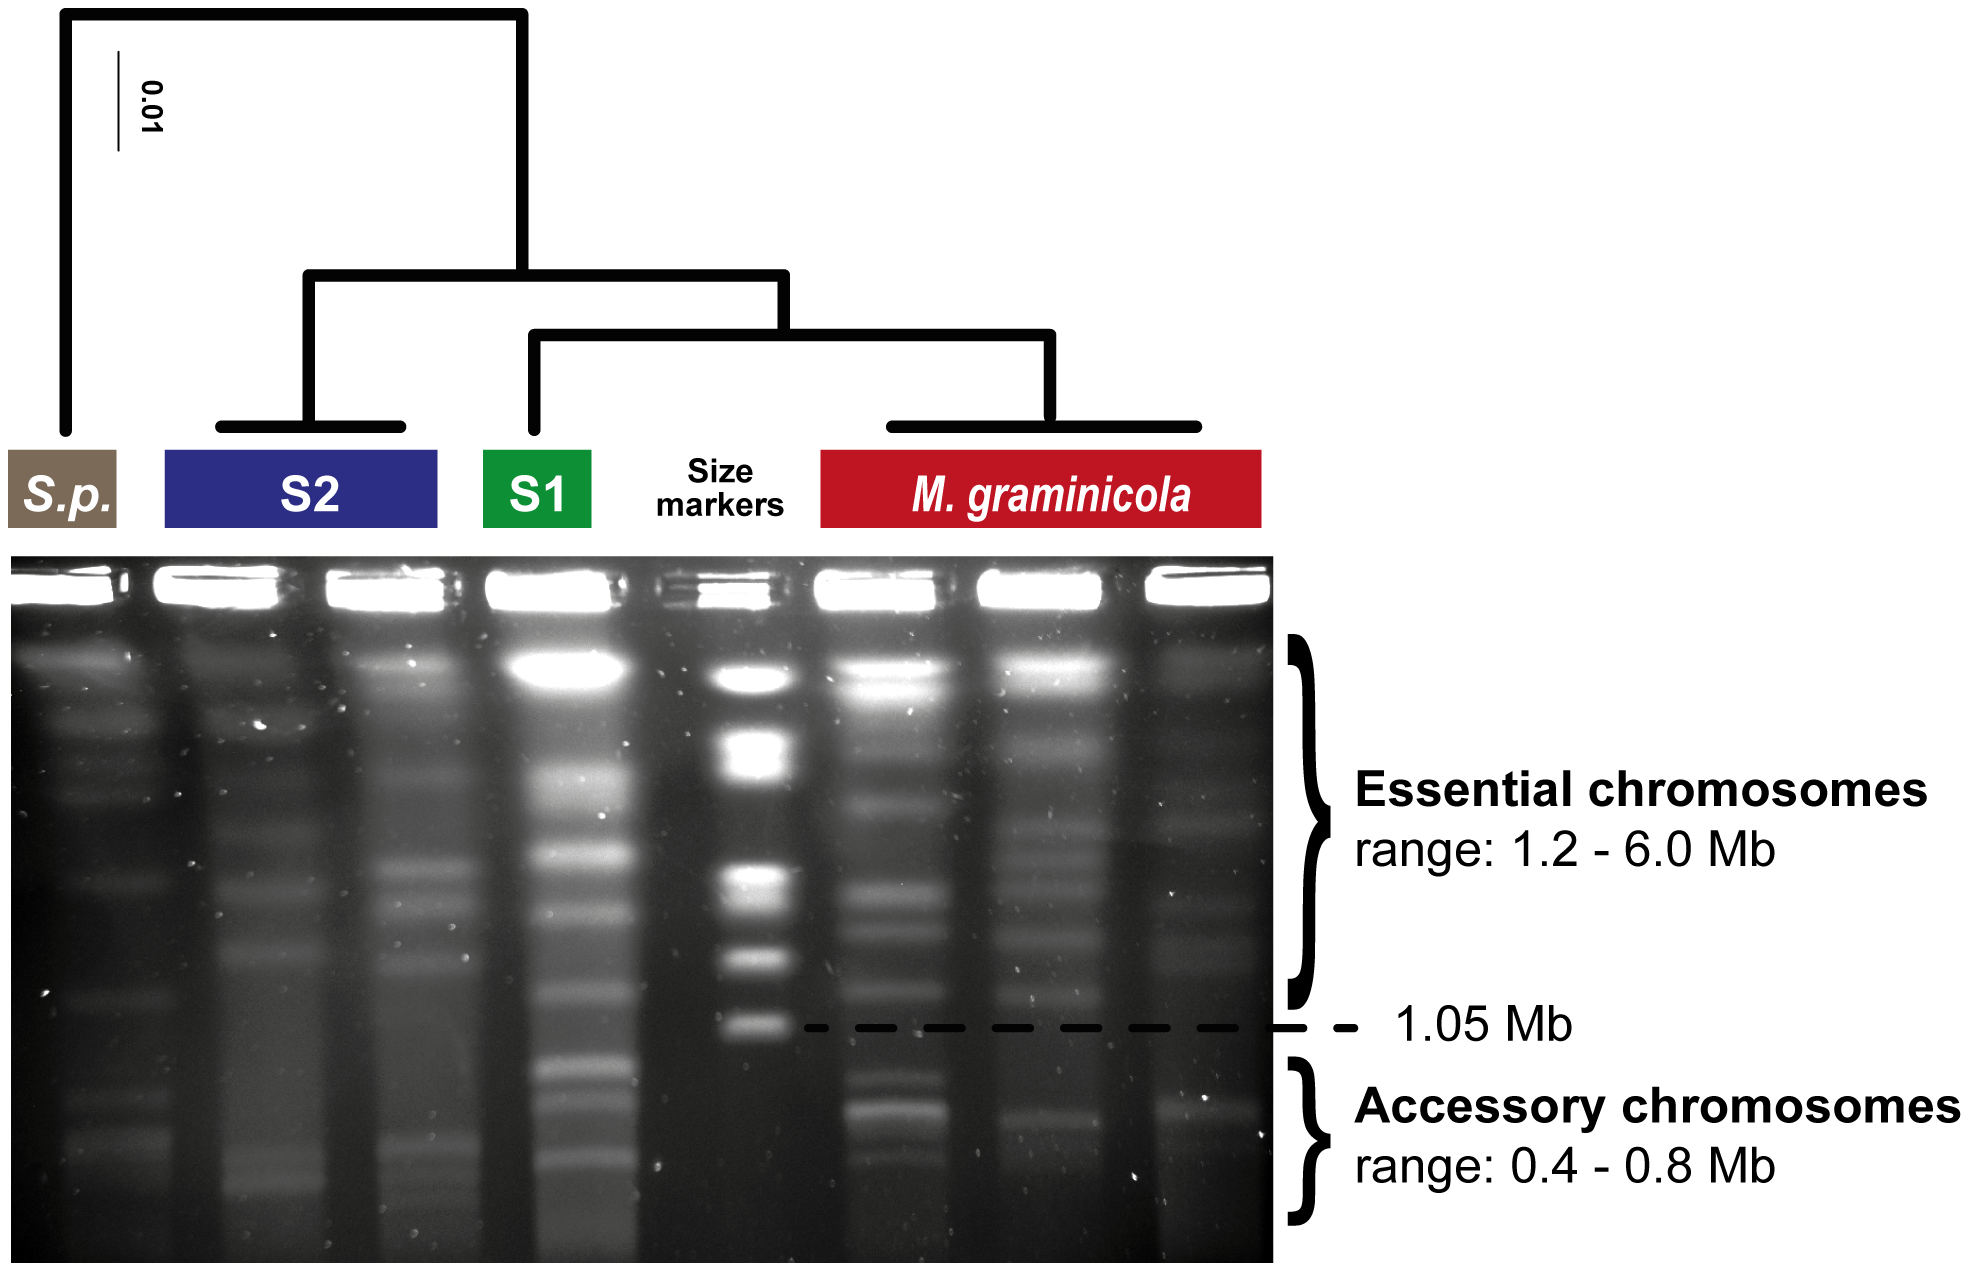 Diversity in essential and accessory chromosomes in the <i>Mycosphaerella</i> clade.